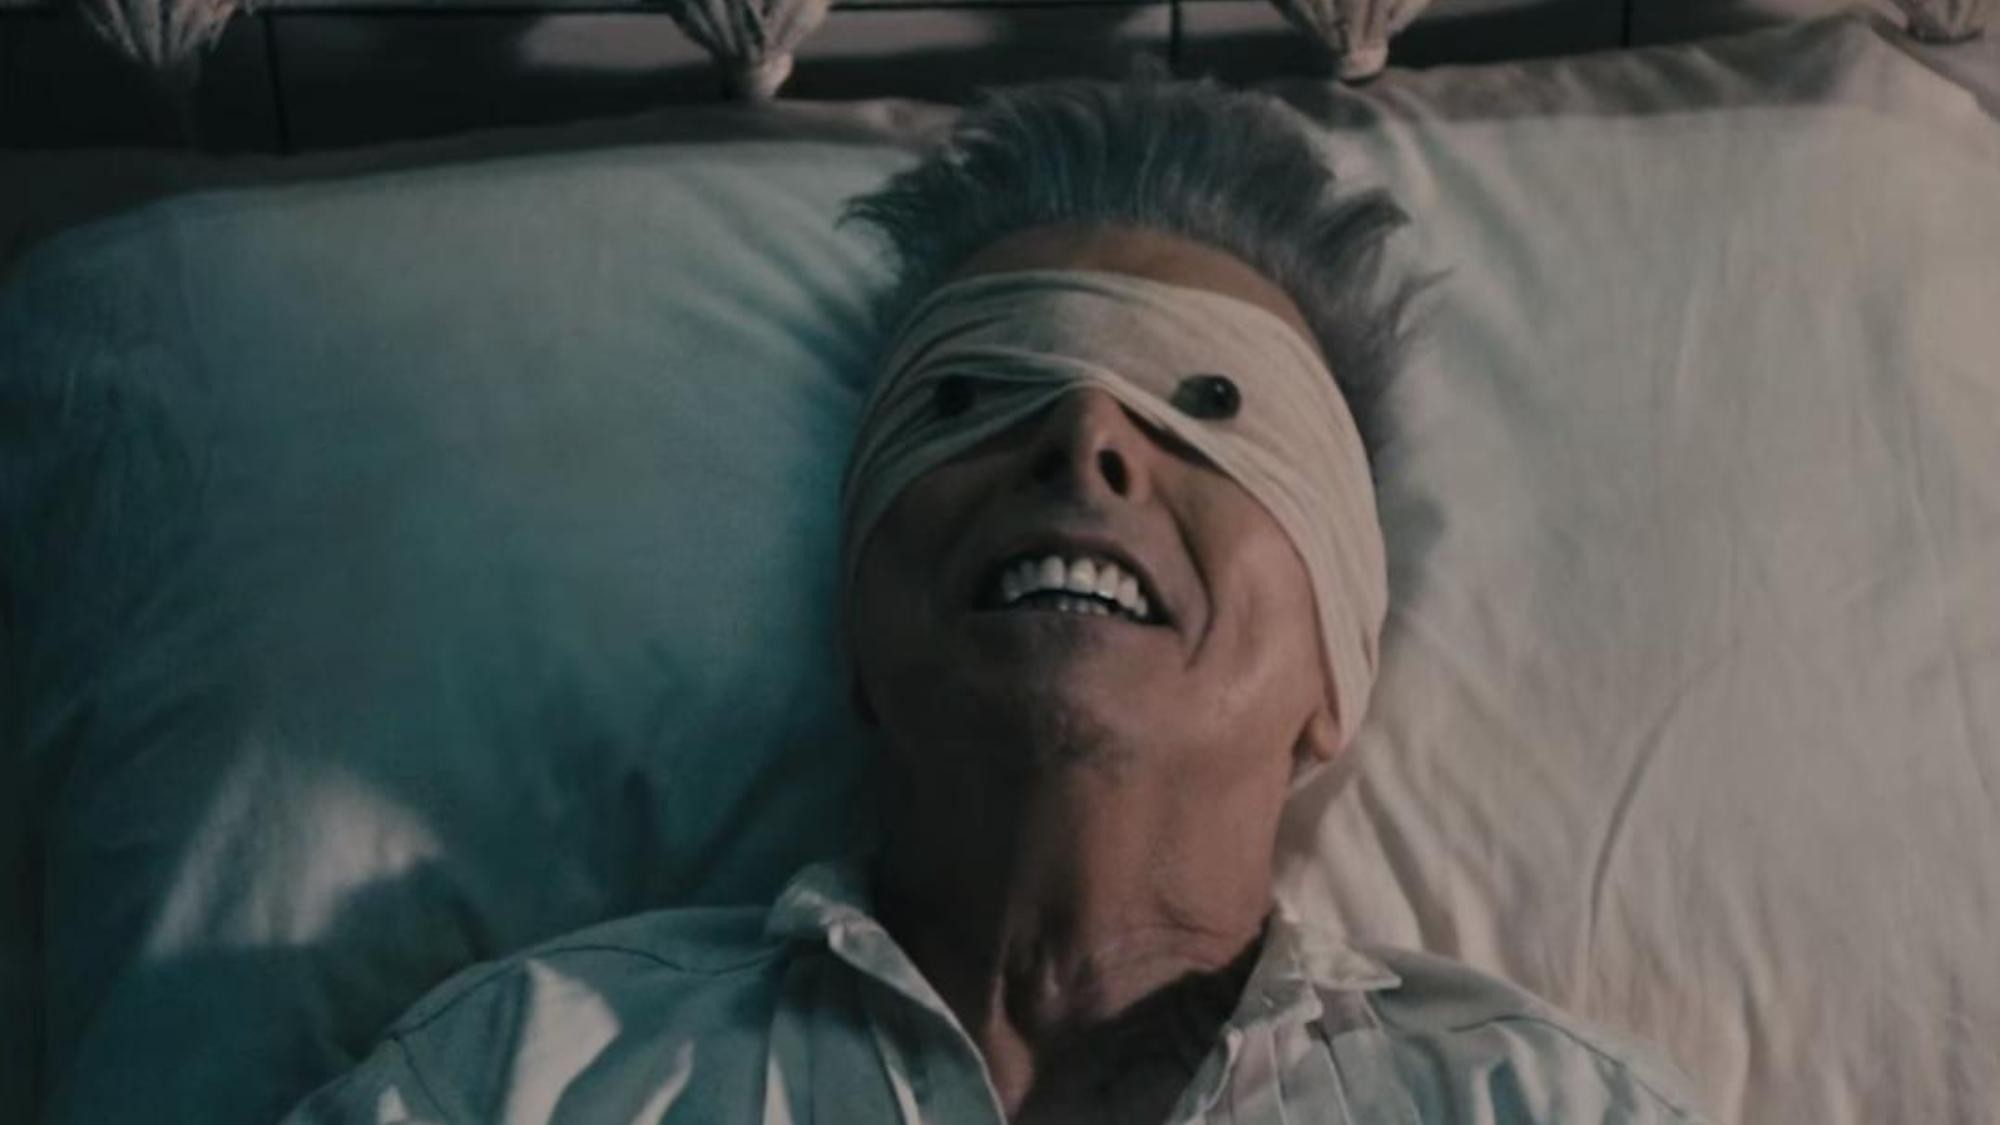 london tickets for david bowie's lazarus musical just went on sale